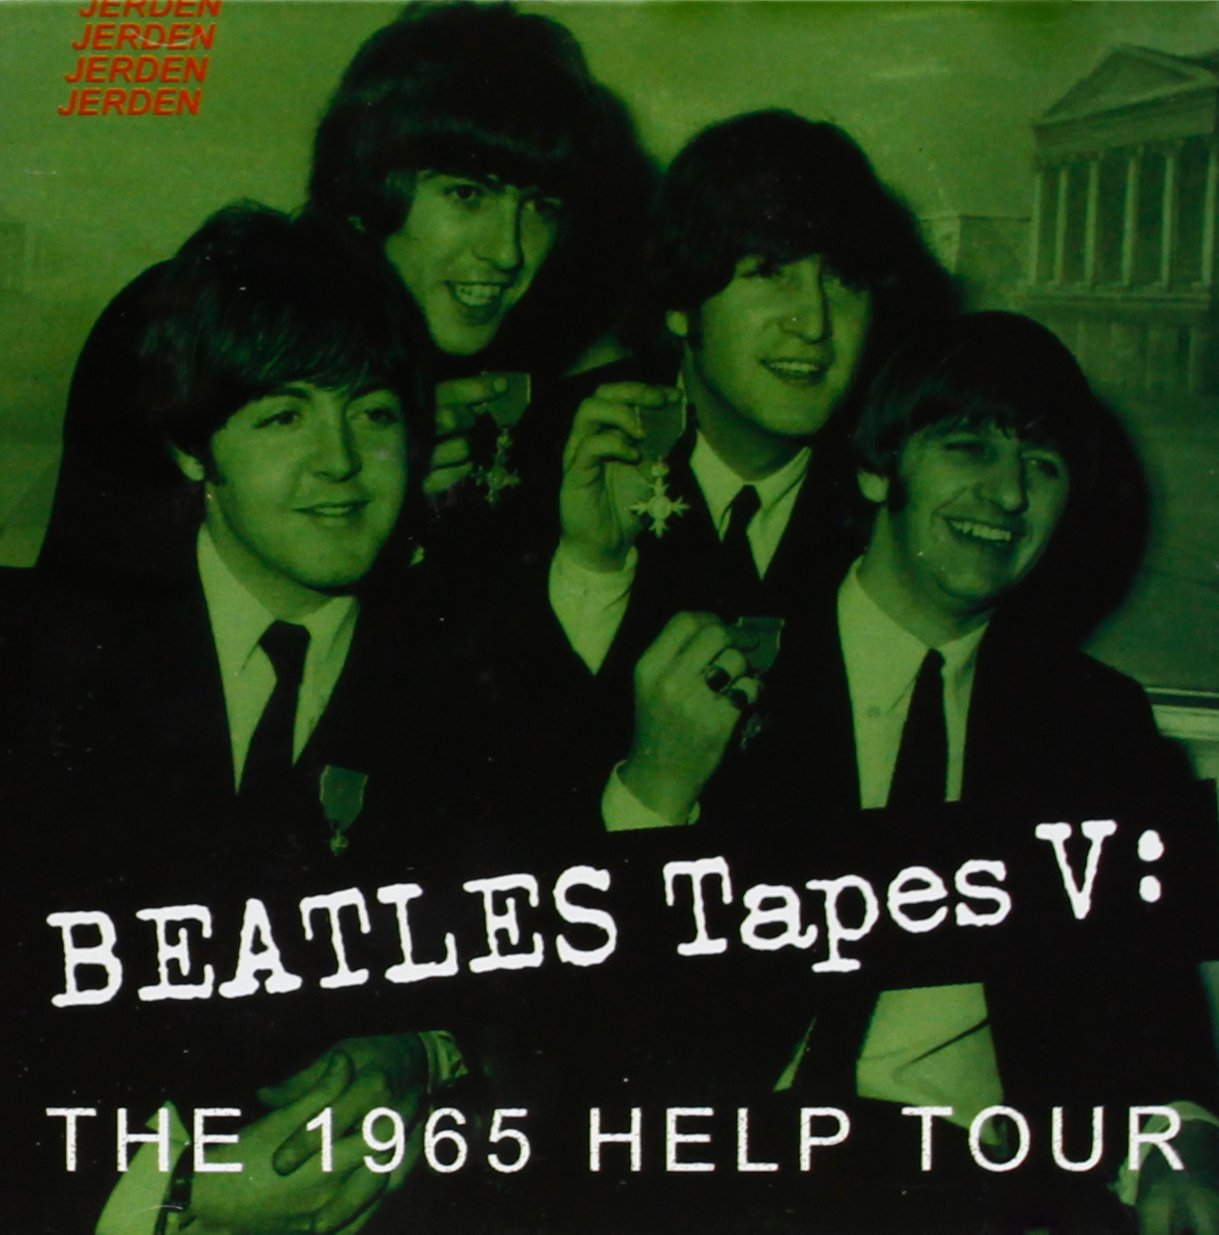 Beatles Tapes V: the 1965 He Tour